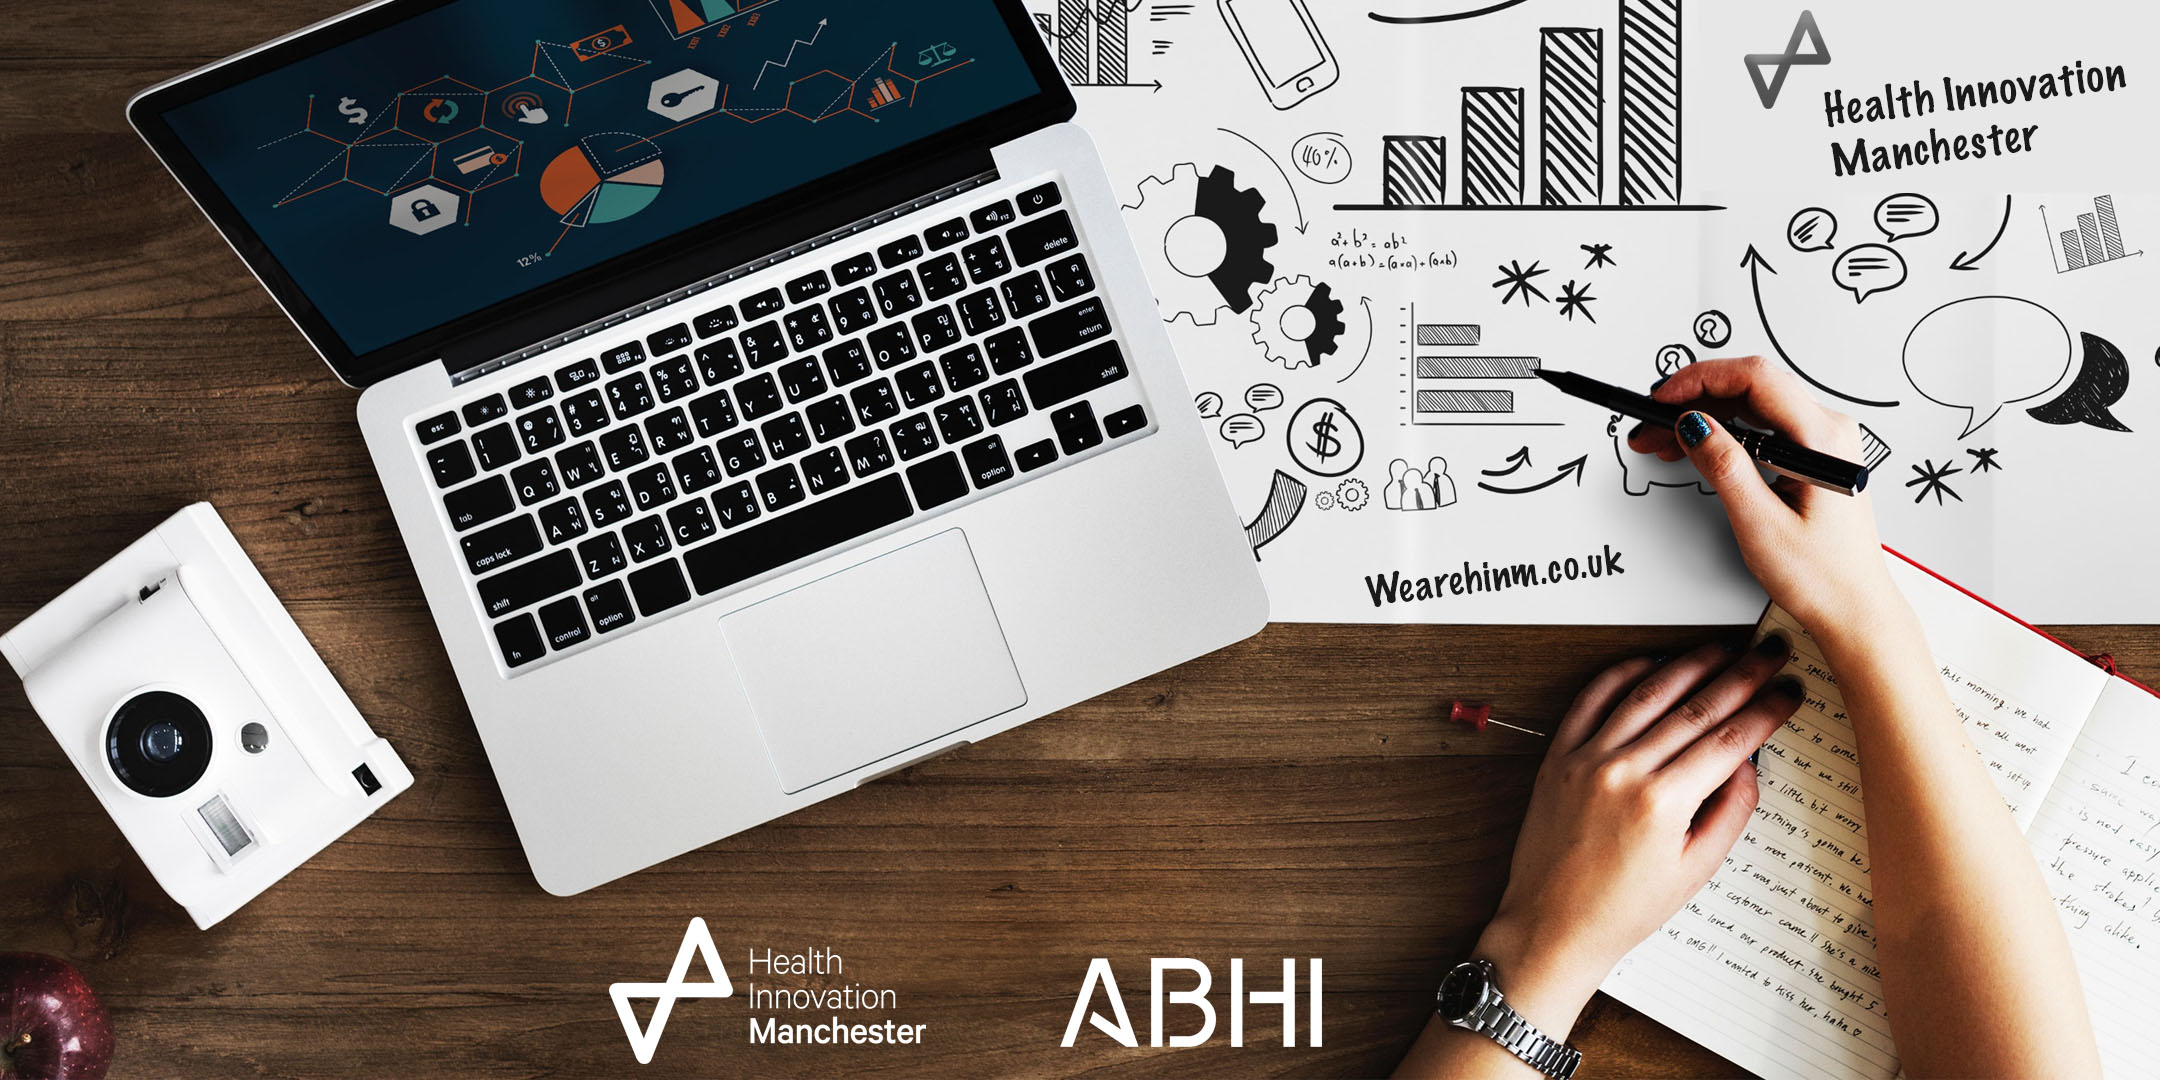 ABPI Health Innovation Manchester